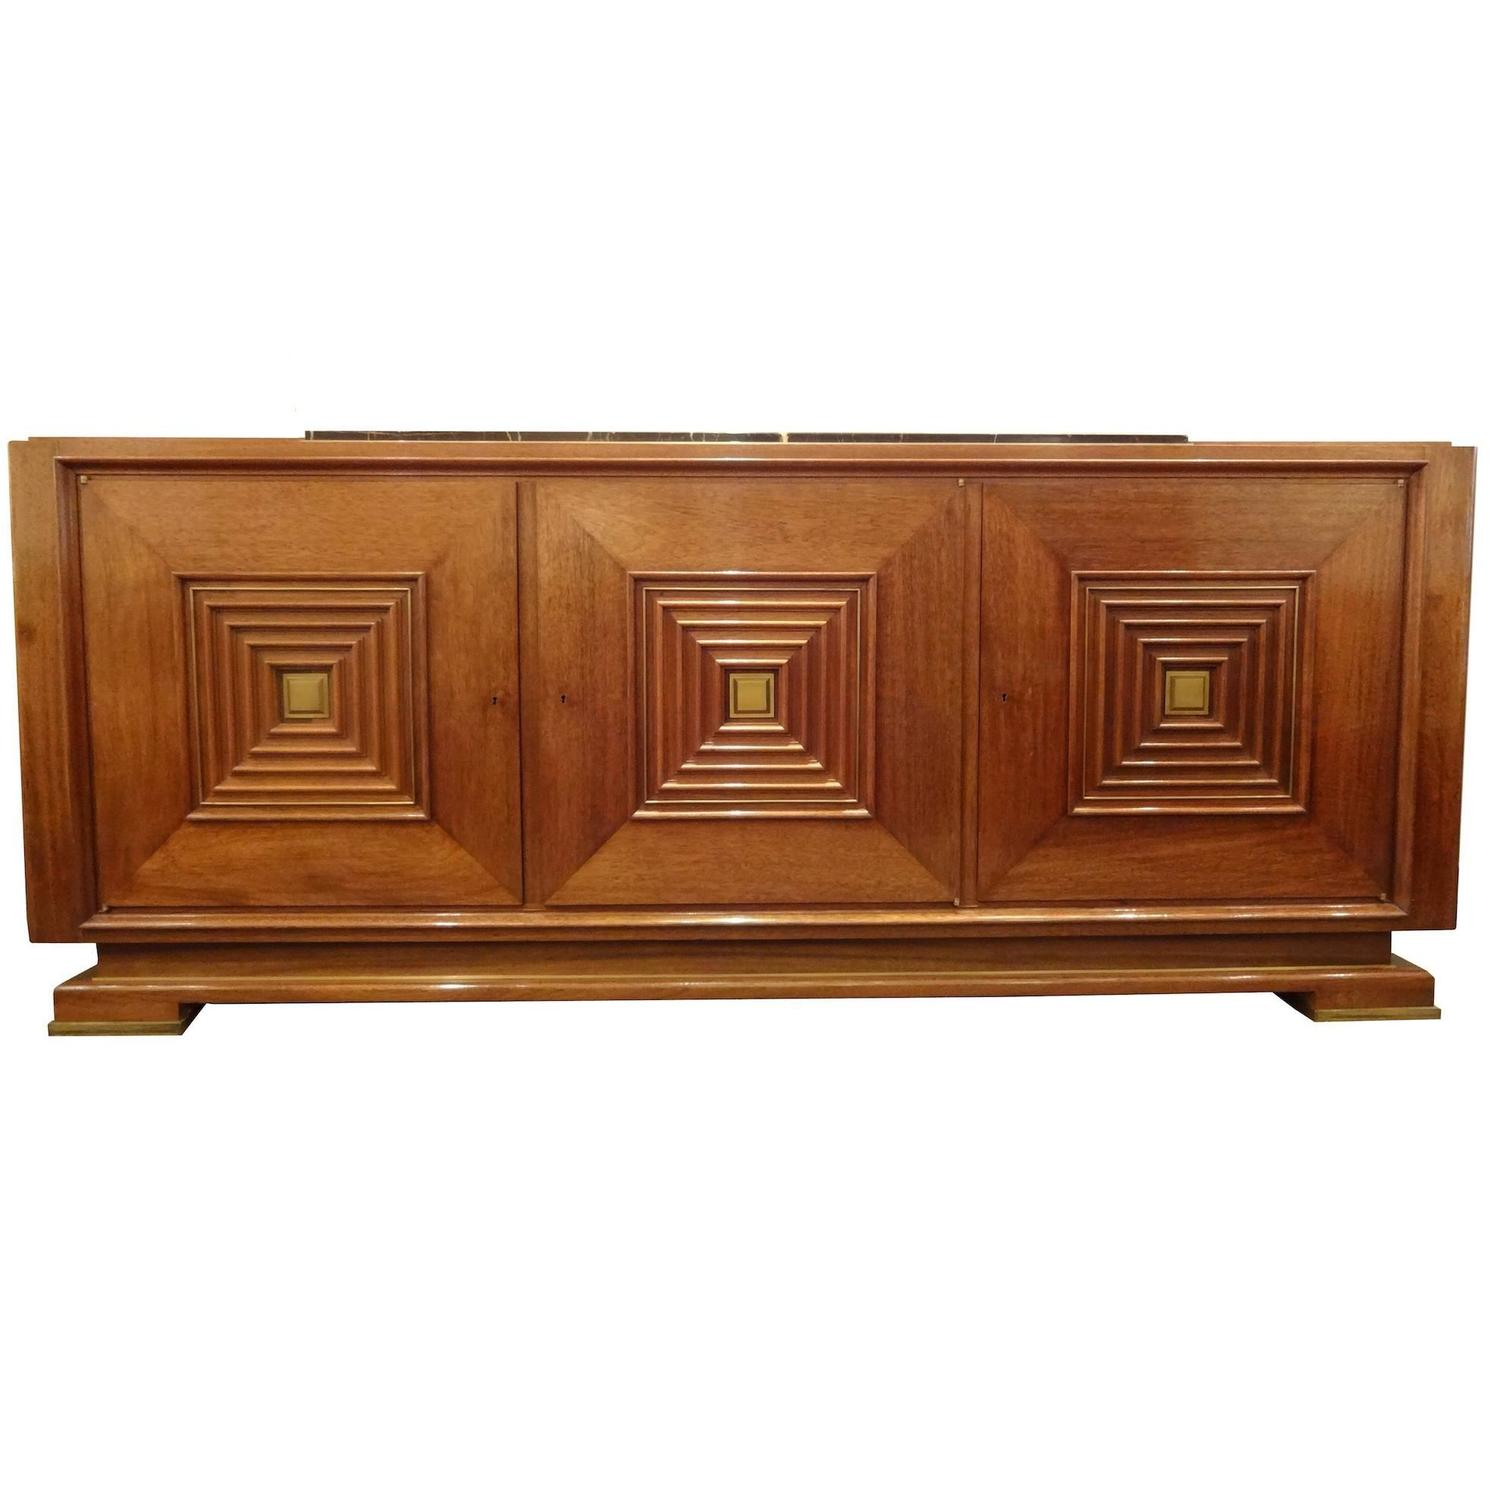 mid century sideboard in hand waxed palisander and bronze for sale at 1stdibs. Black Bedroom Furniture Sets. Home Design Ideas